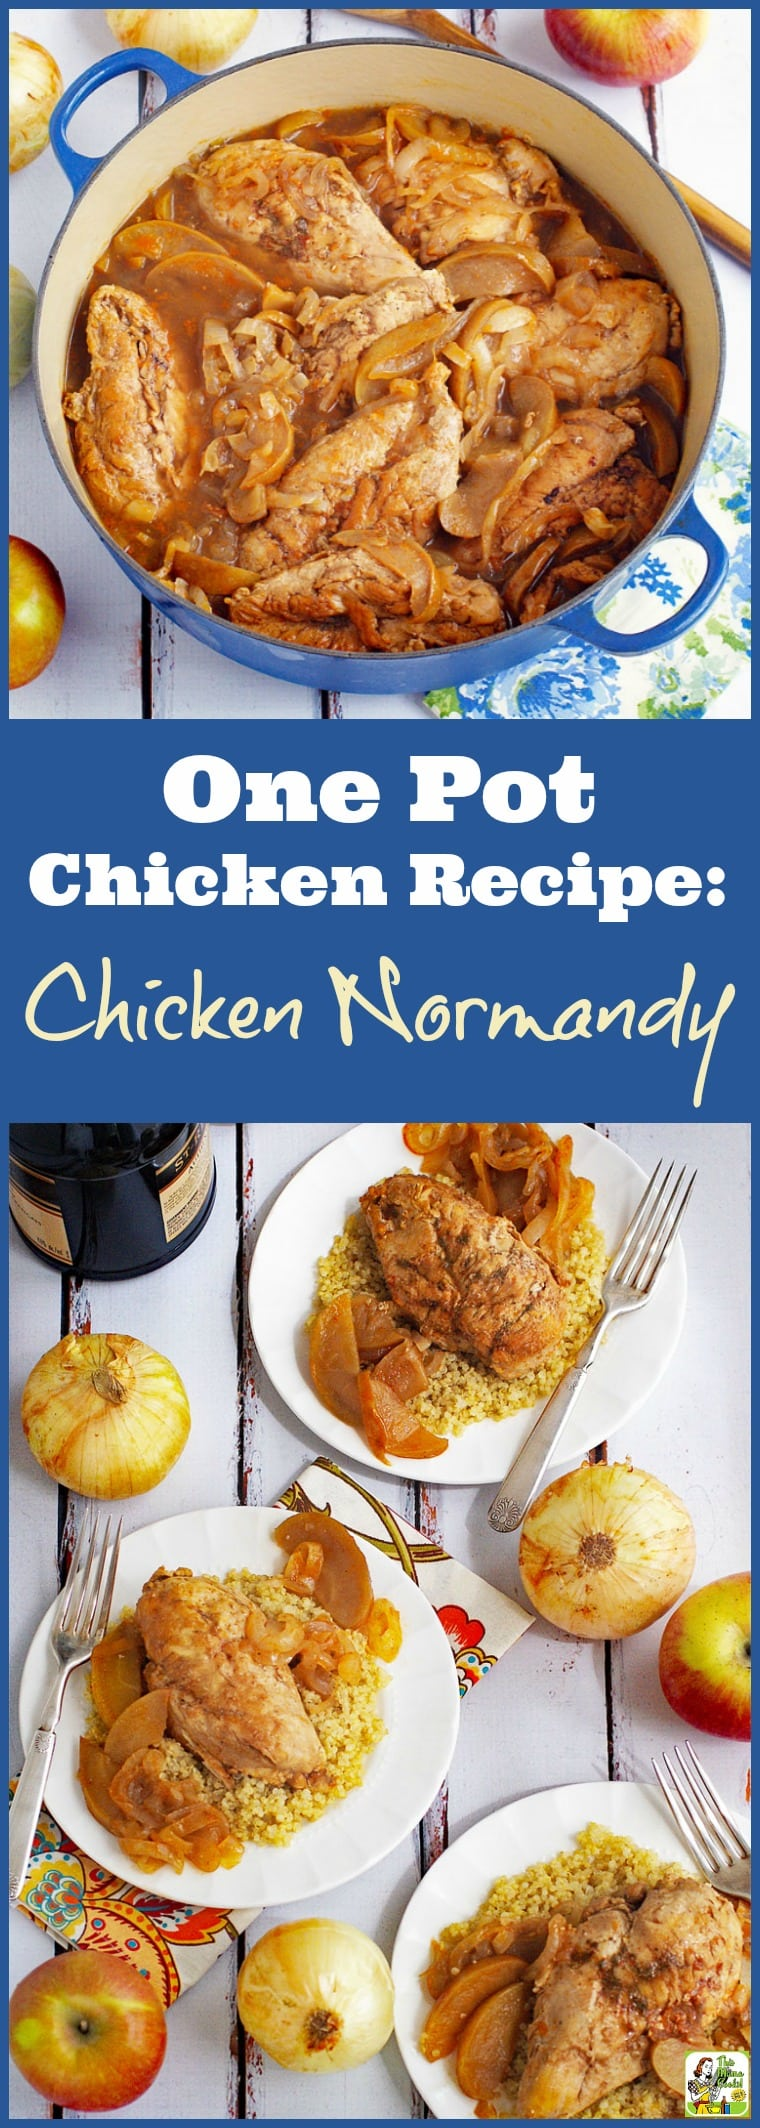 One Pot Chicken Recipes: Chicken Normandy à la Marie-Celine